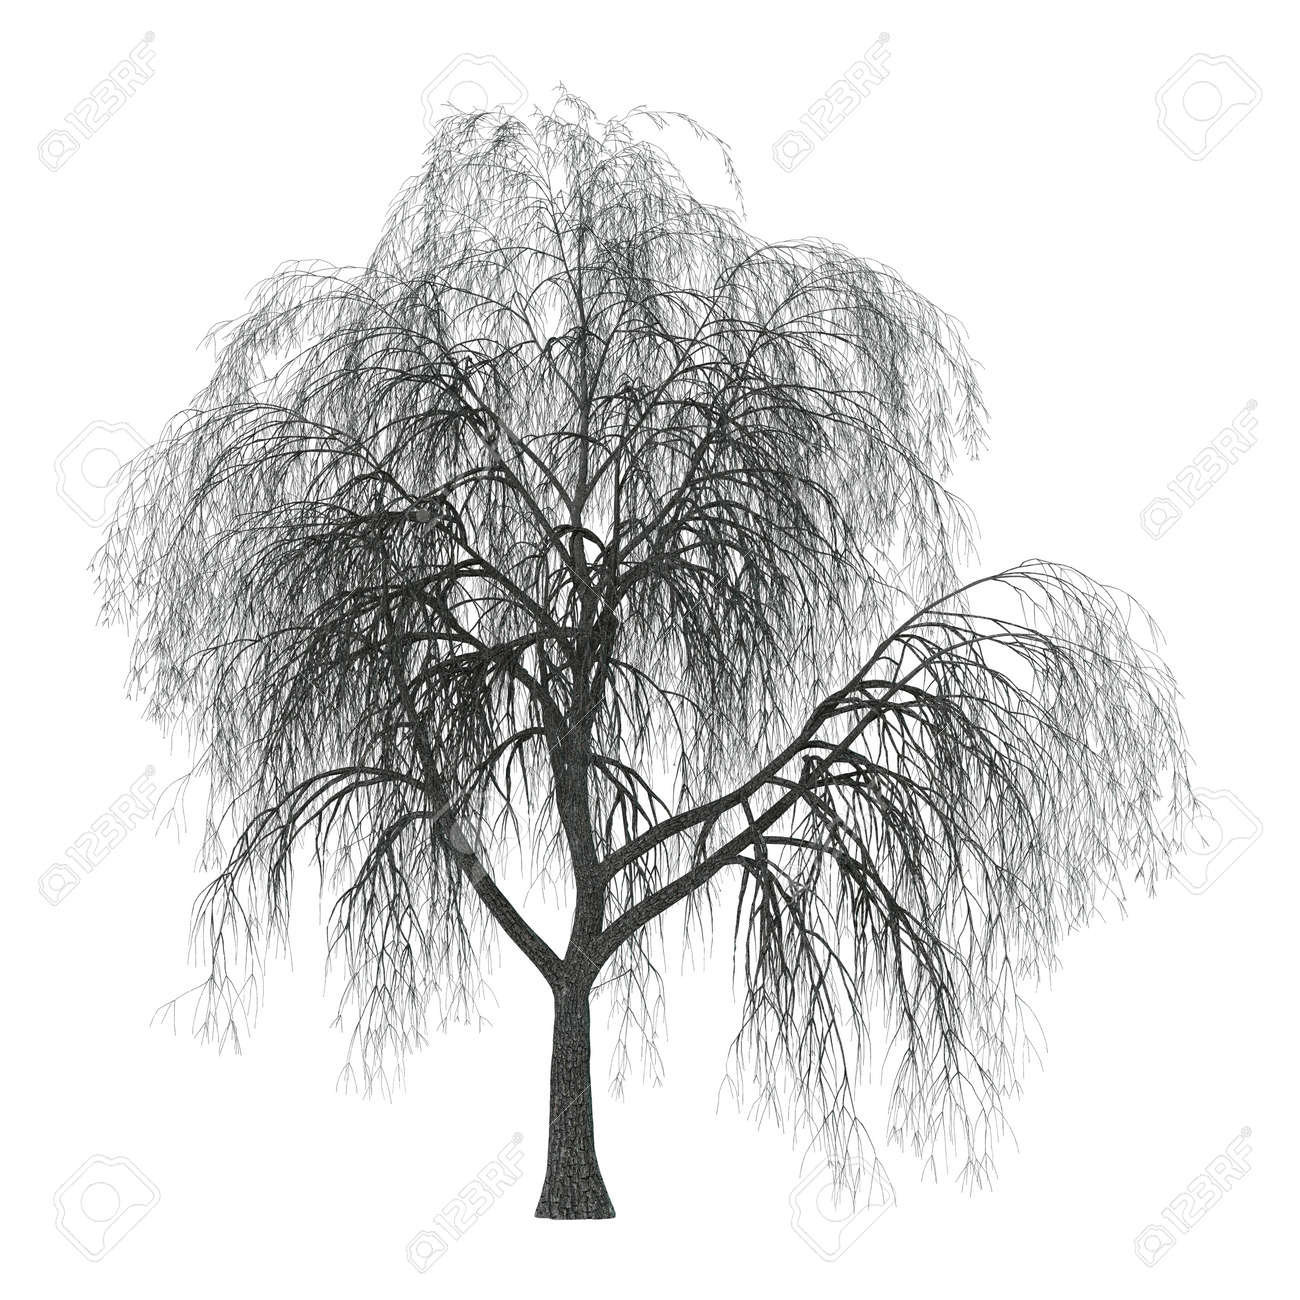 hight resolution of 3d illustration of a weeping willow or sallow or osier isolated on white background stock photo